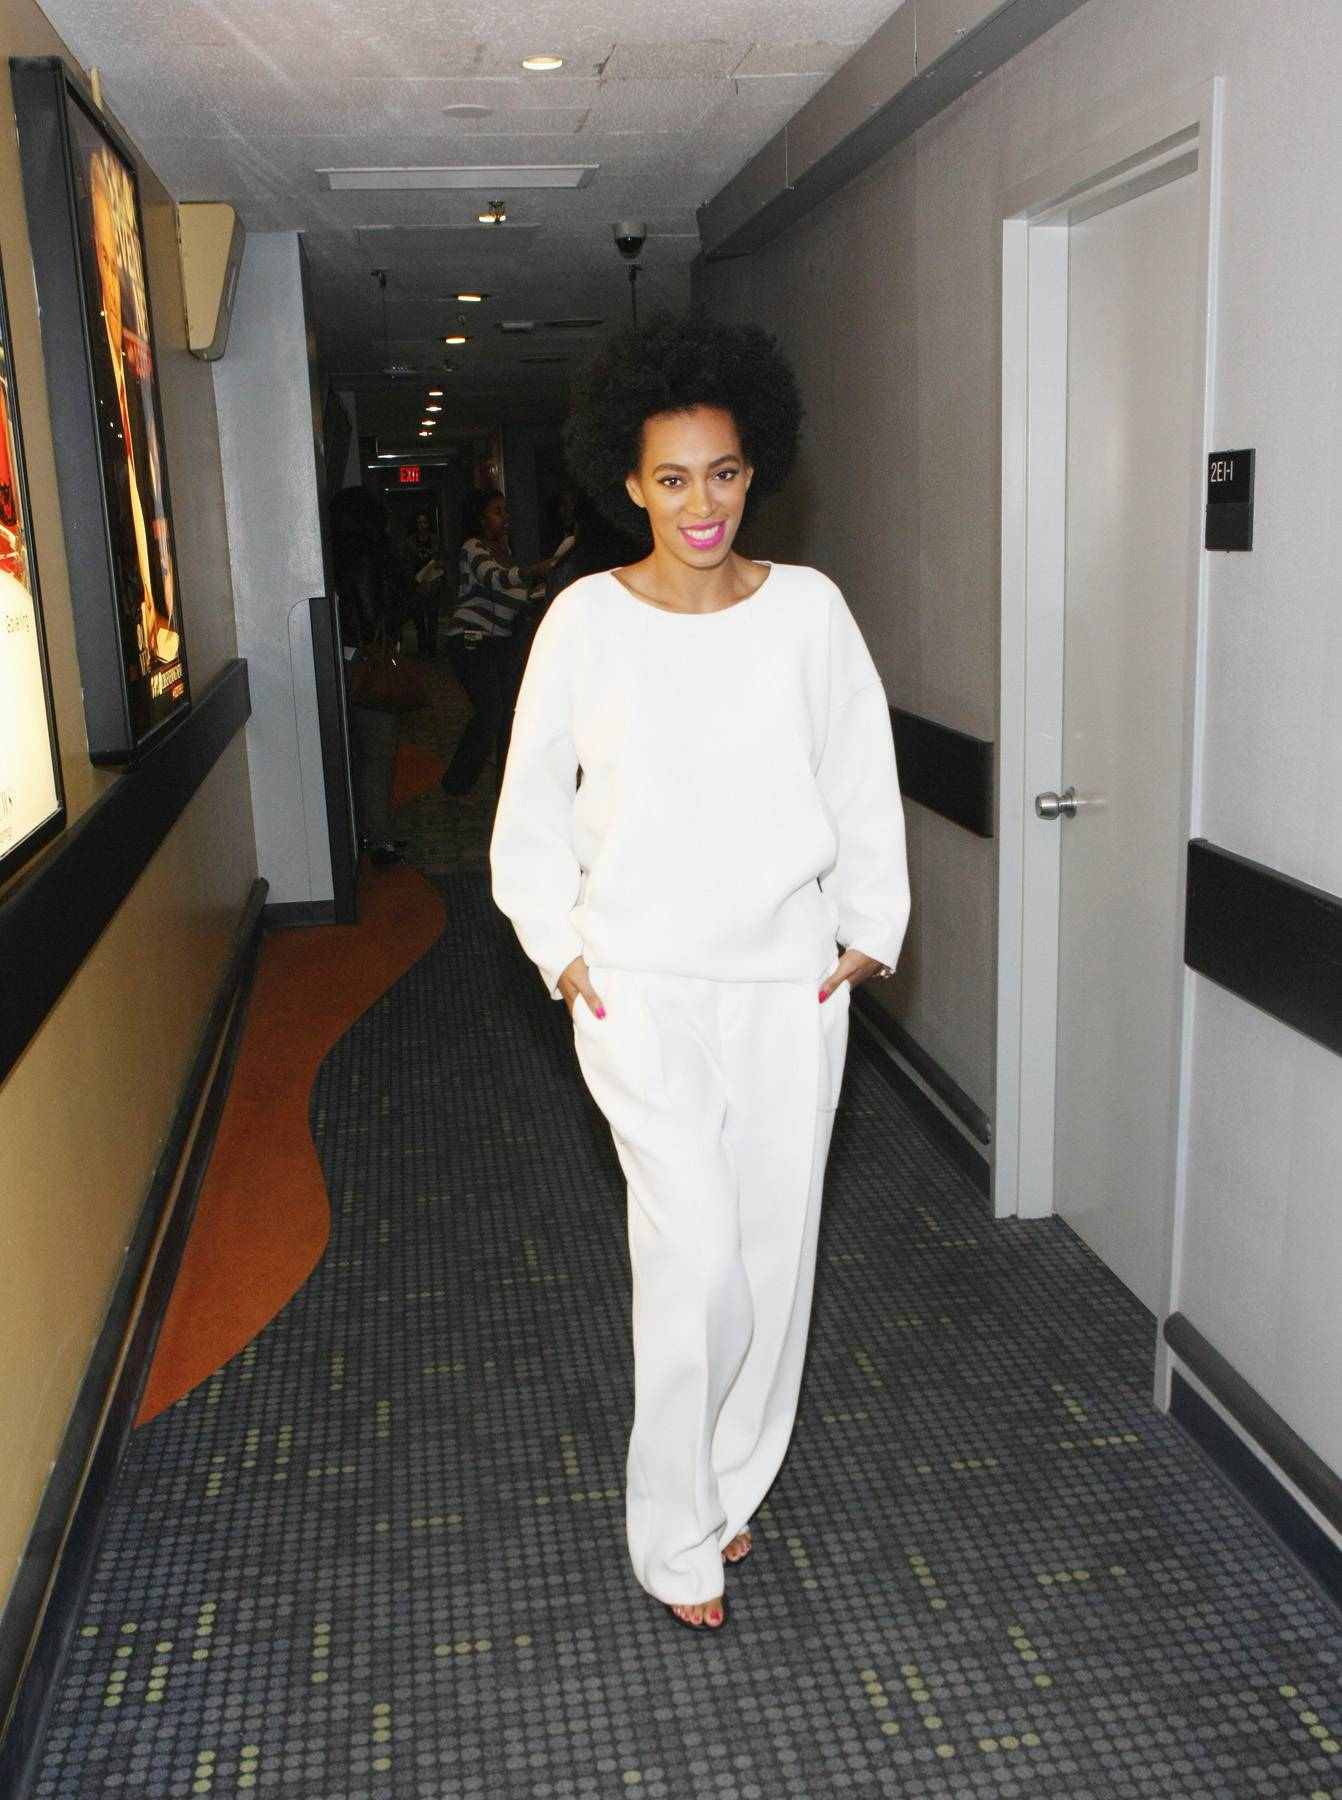 Solo - No need for a grand entrance, Solange enters and people watch her style.